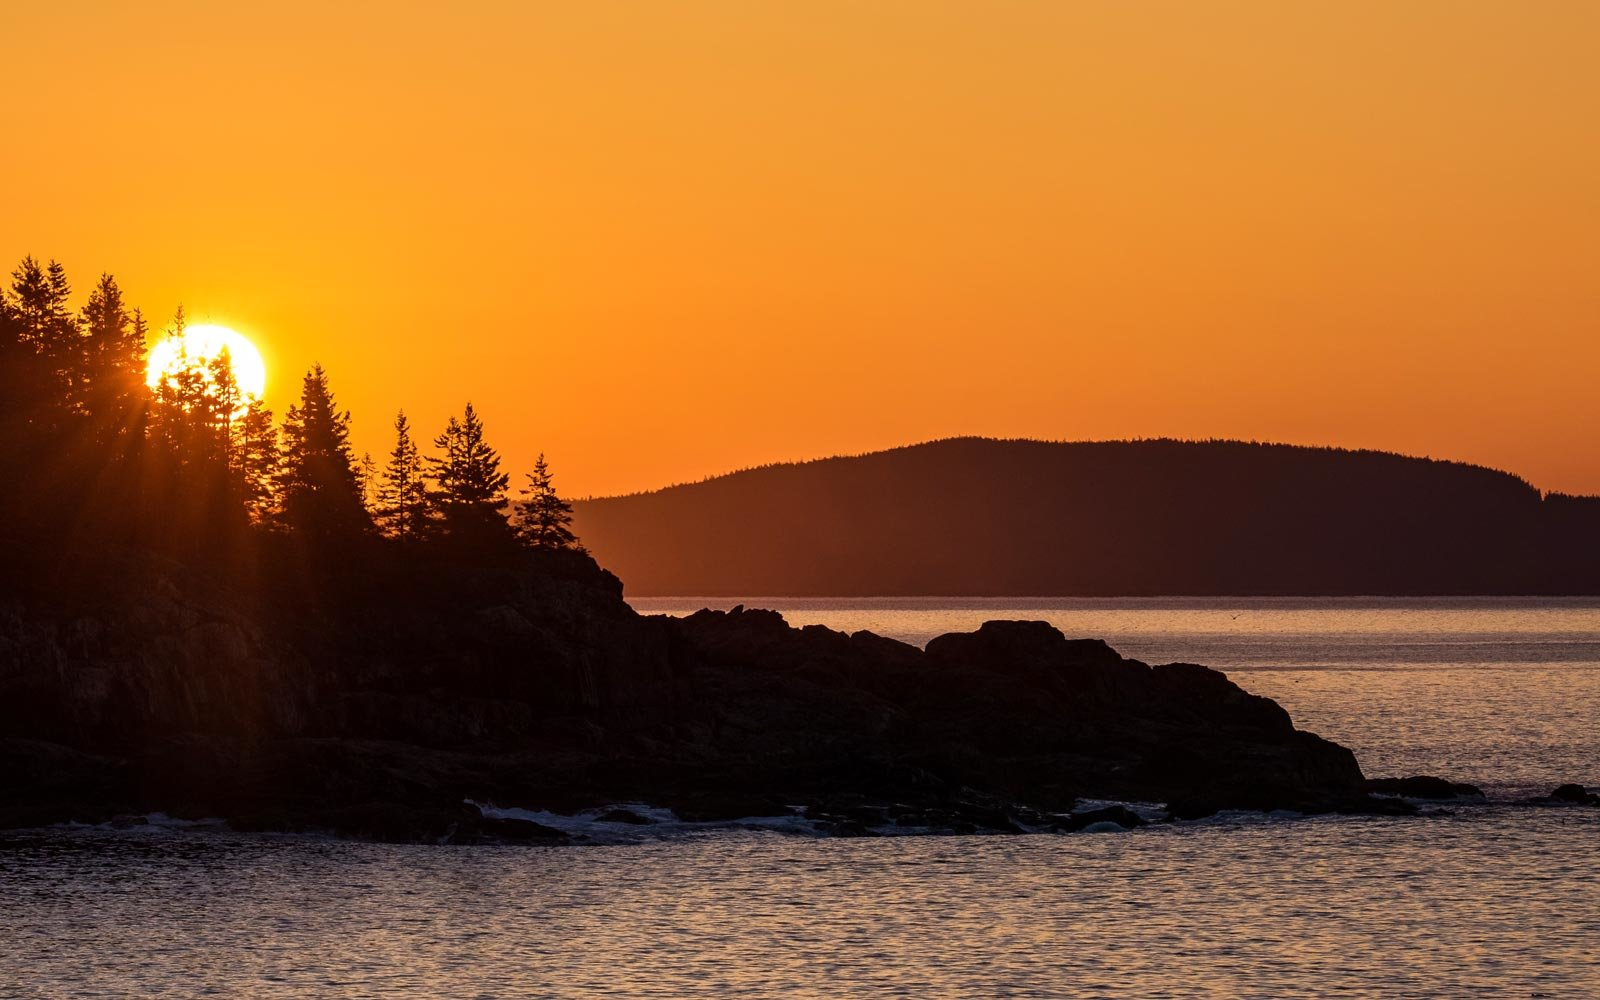 The Schoodic Peninsula in Acadia National Park